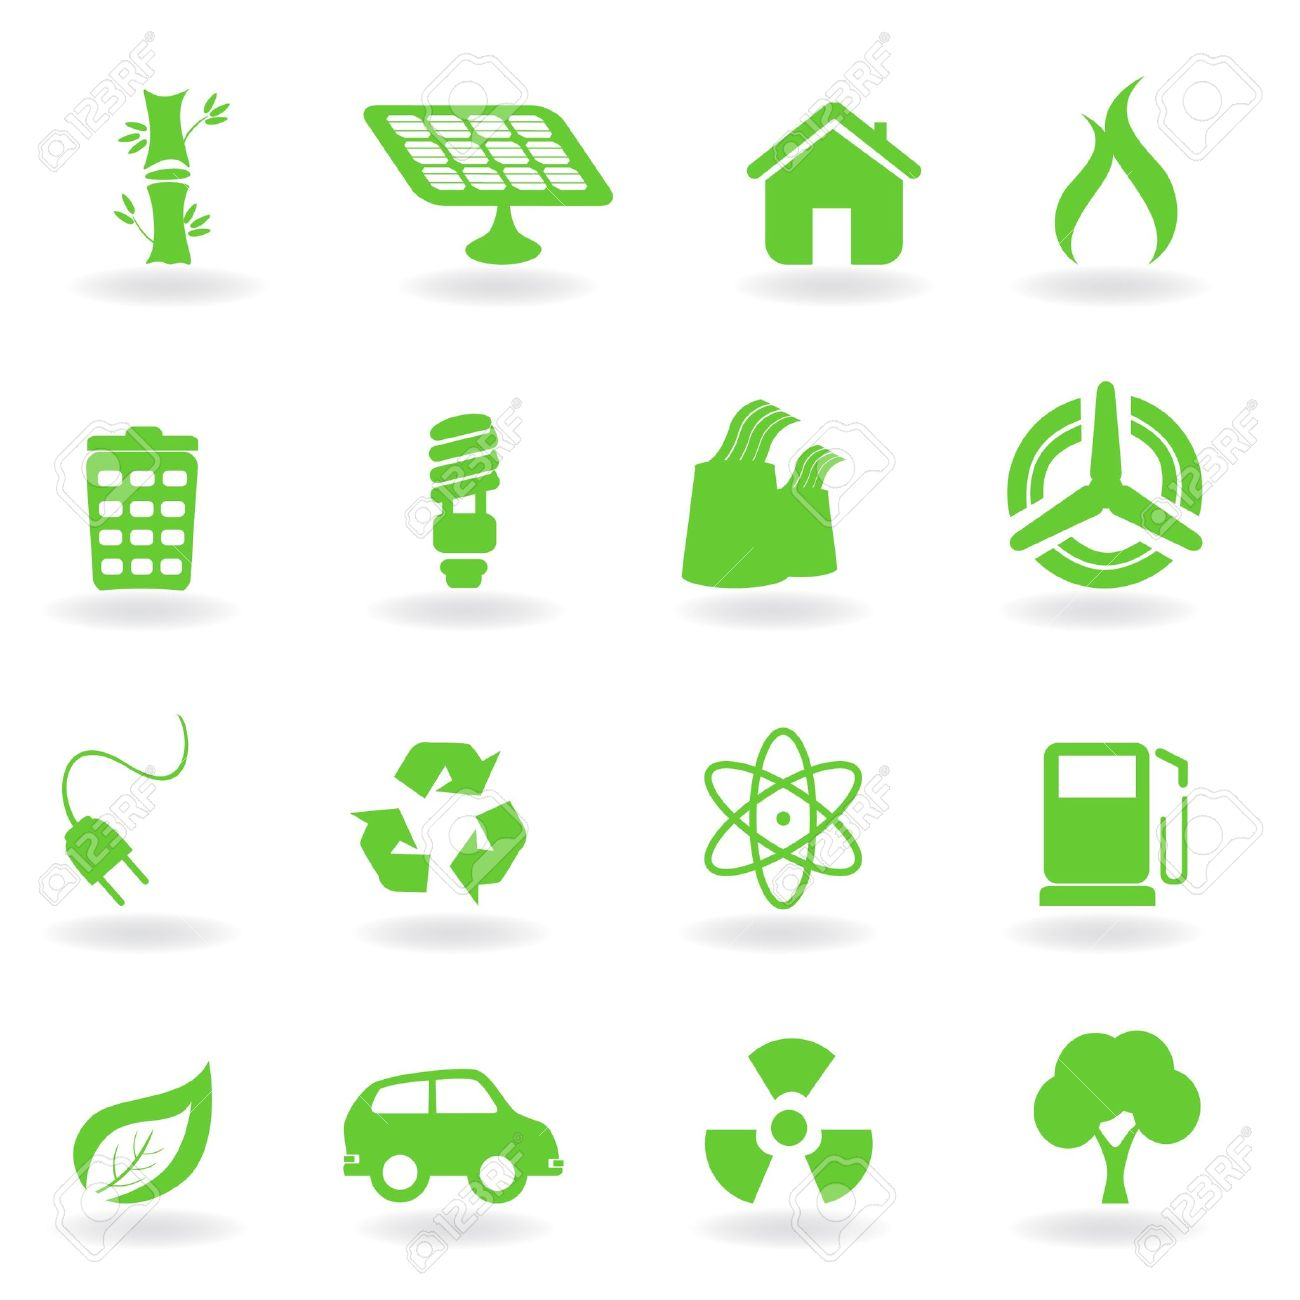 Ecological and environment related symbols icon set Stock Photo - 7615247